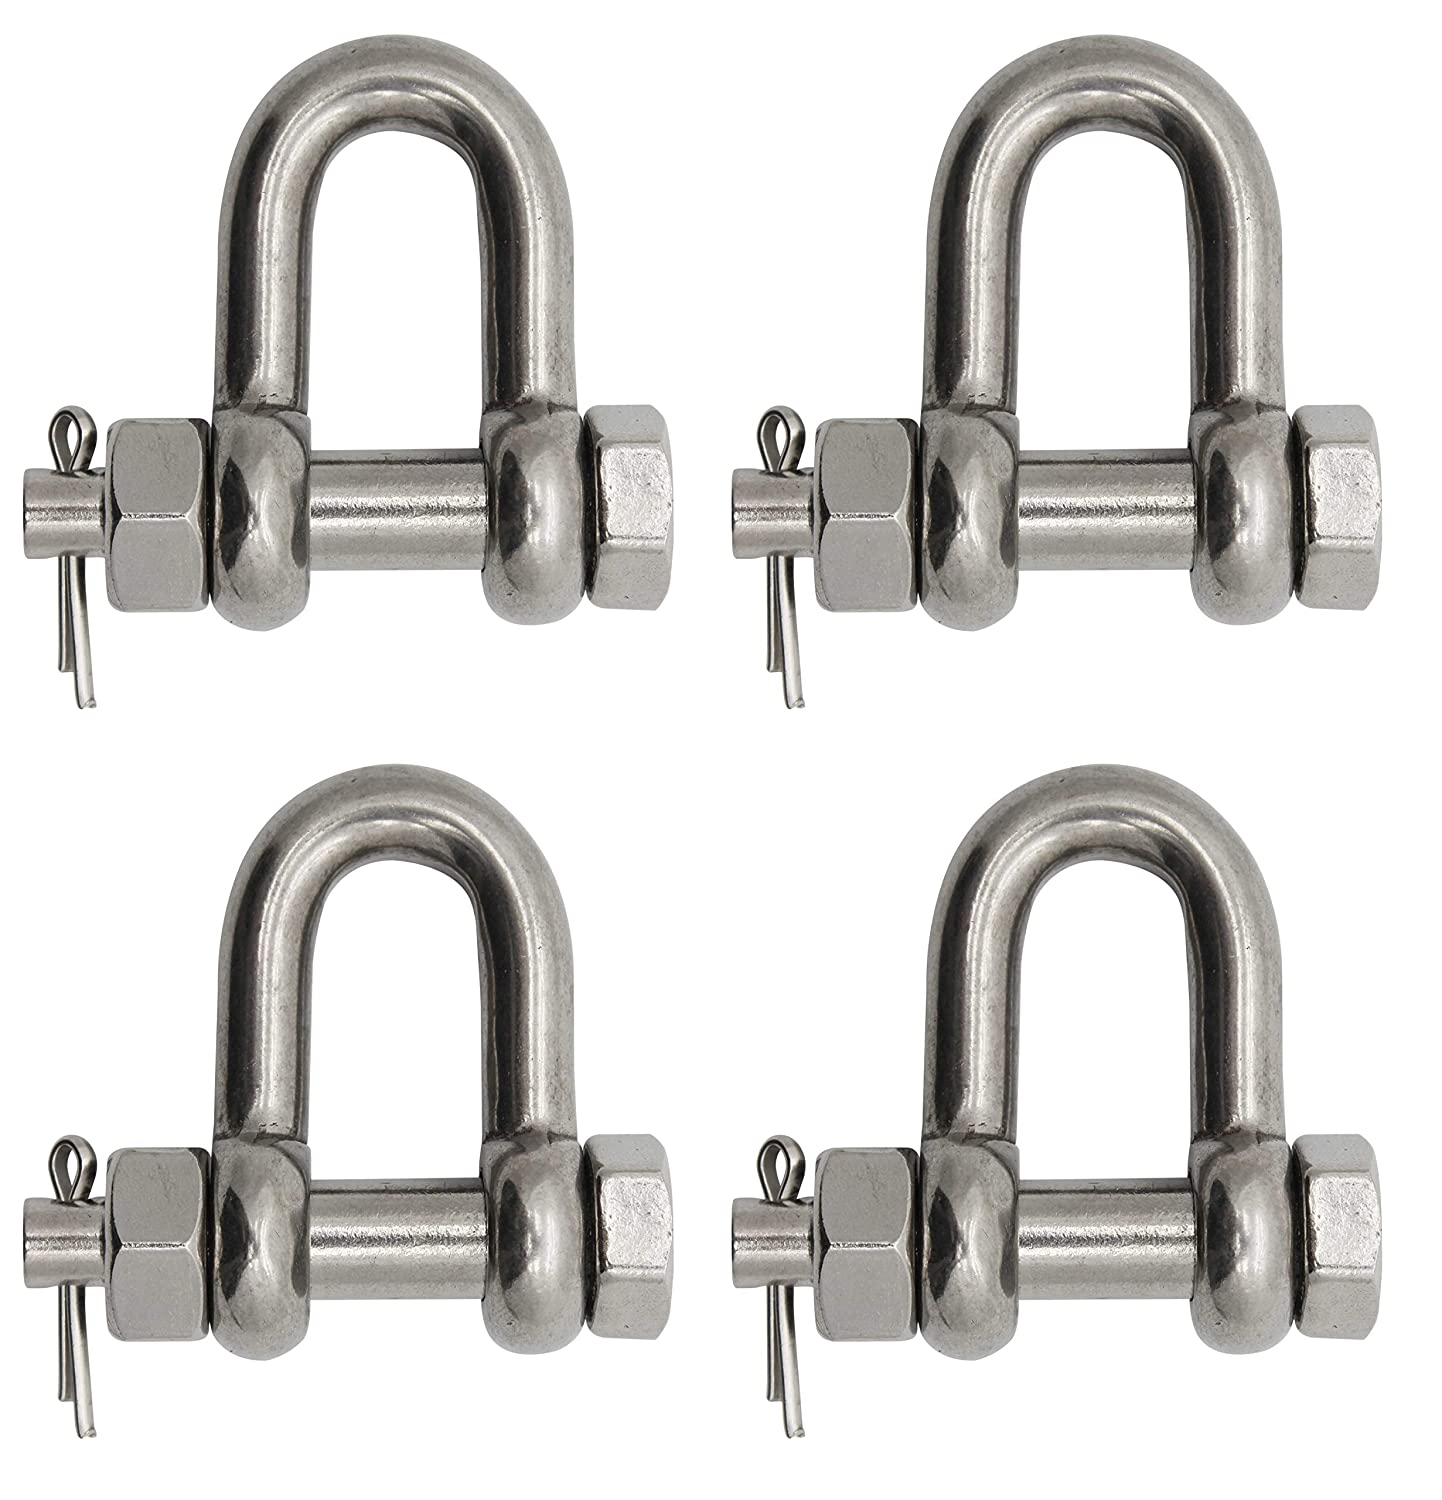 4-Pack Extreme Max Silver Standard 3006.8351.4 BoatTector Stainless Steel Bolt-Type Chain Shackle-1//2